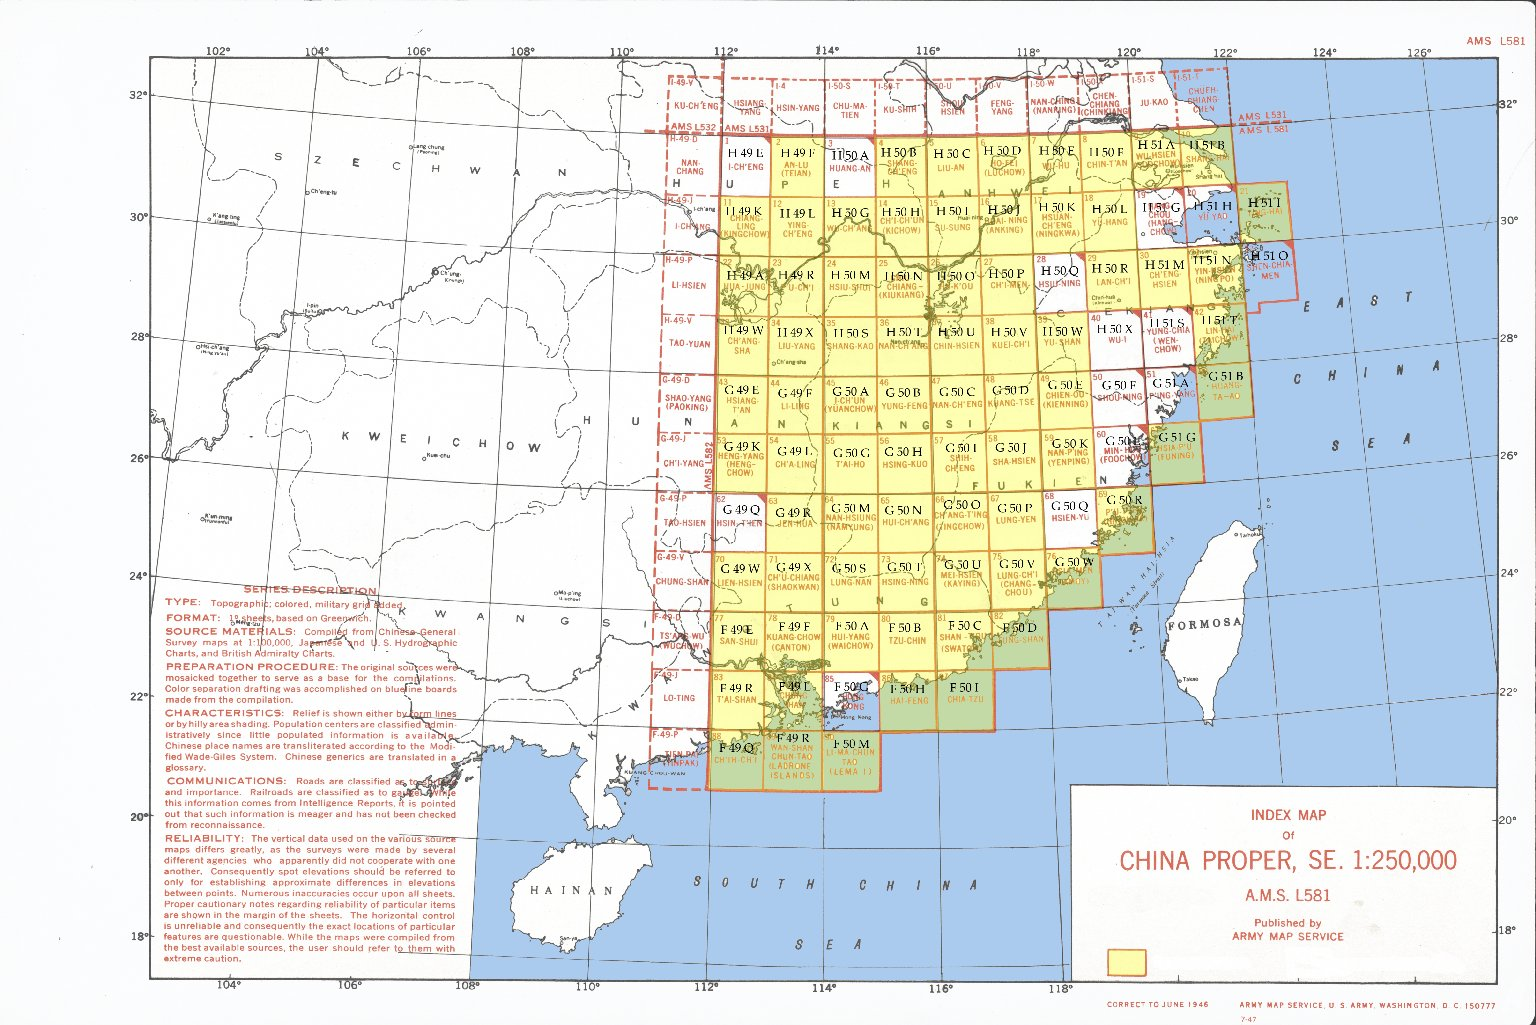 Index map of China proper, SE. 1:250,000